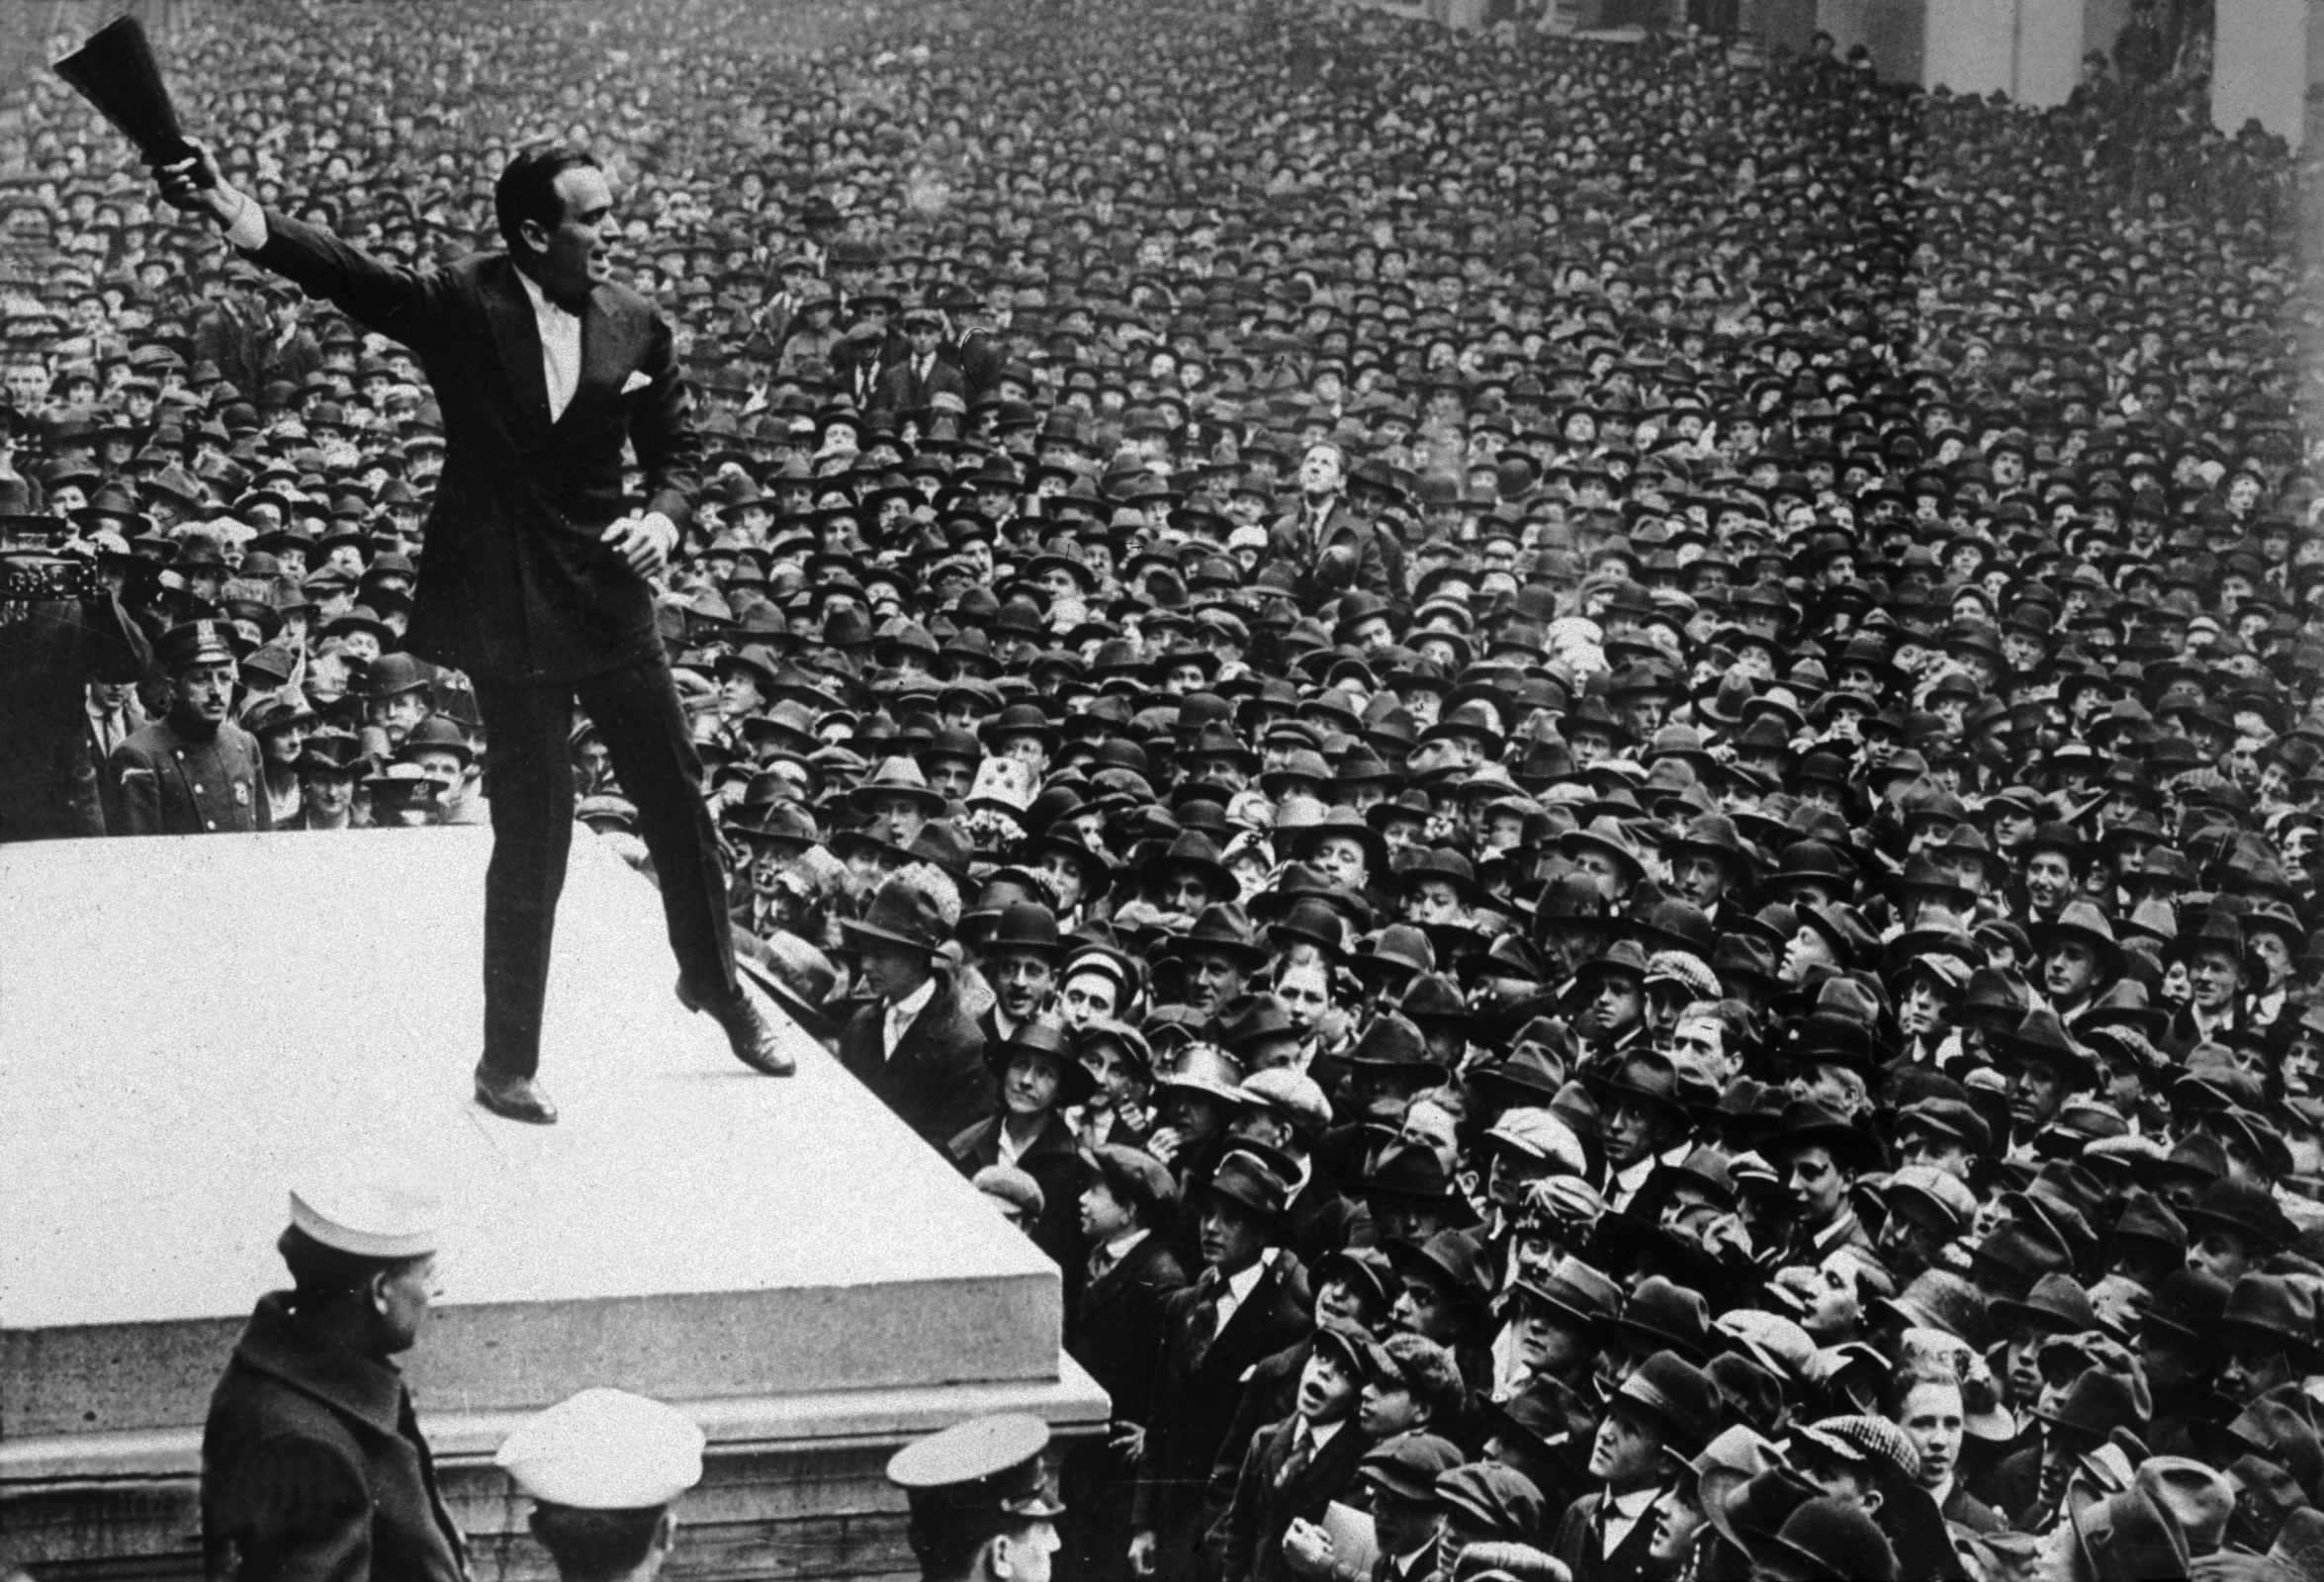 Full-length image of American actor Douglas Fairbanks Sr. waving a megaphone in the air while speaking from the Sub Treasury Building New York, to a sea of people, during a war bond rally, World War I.